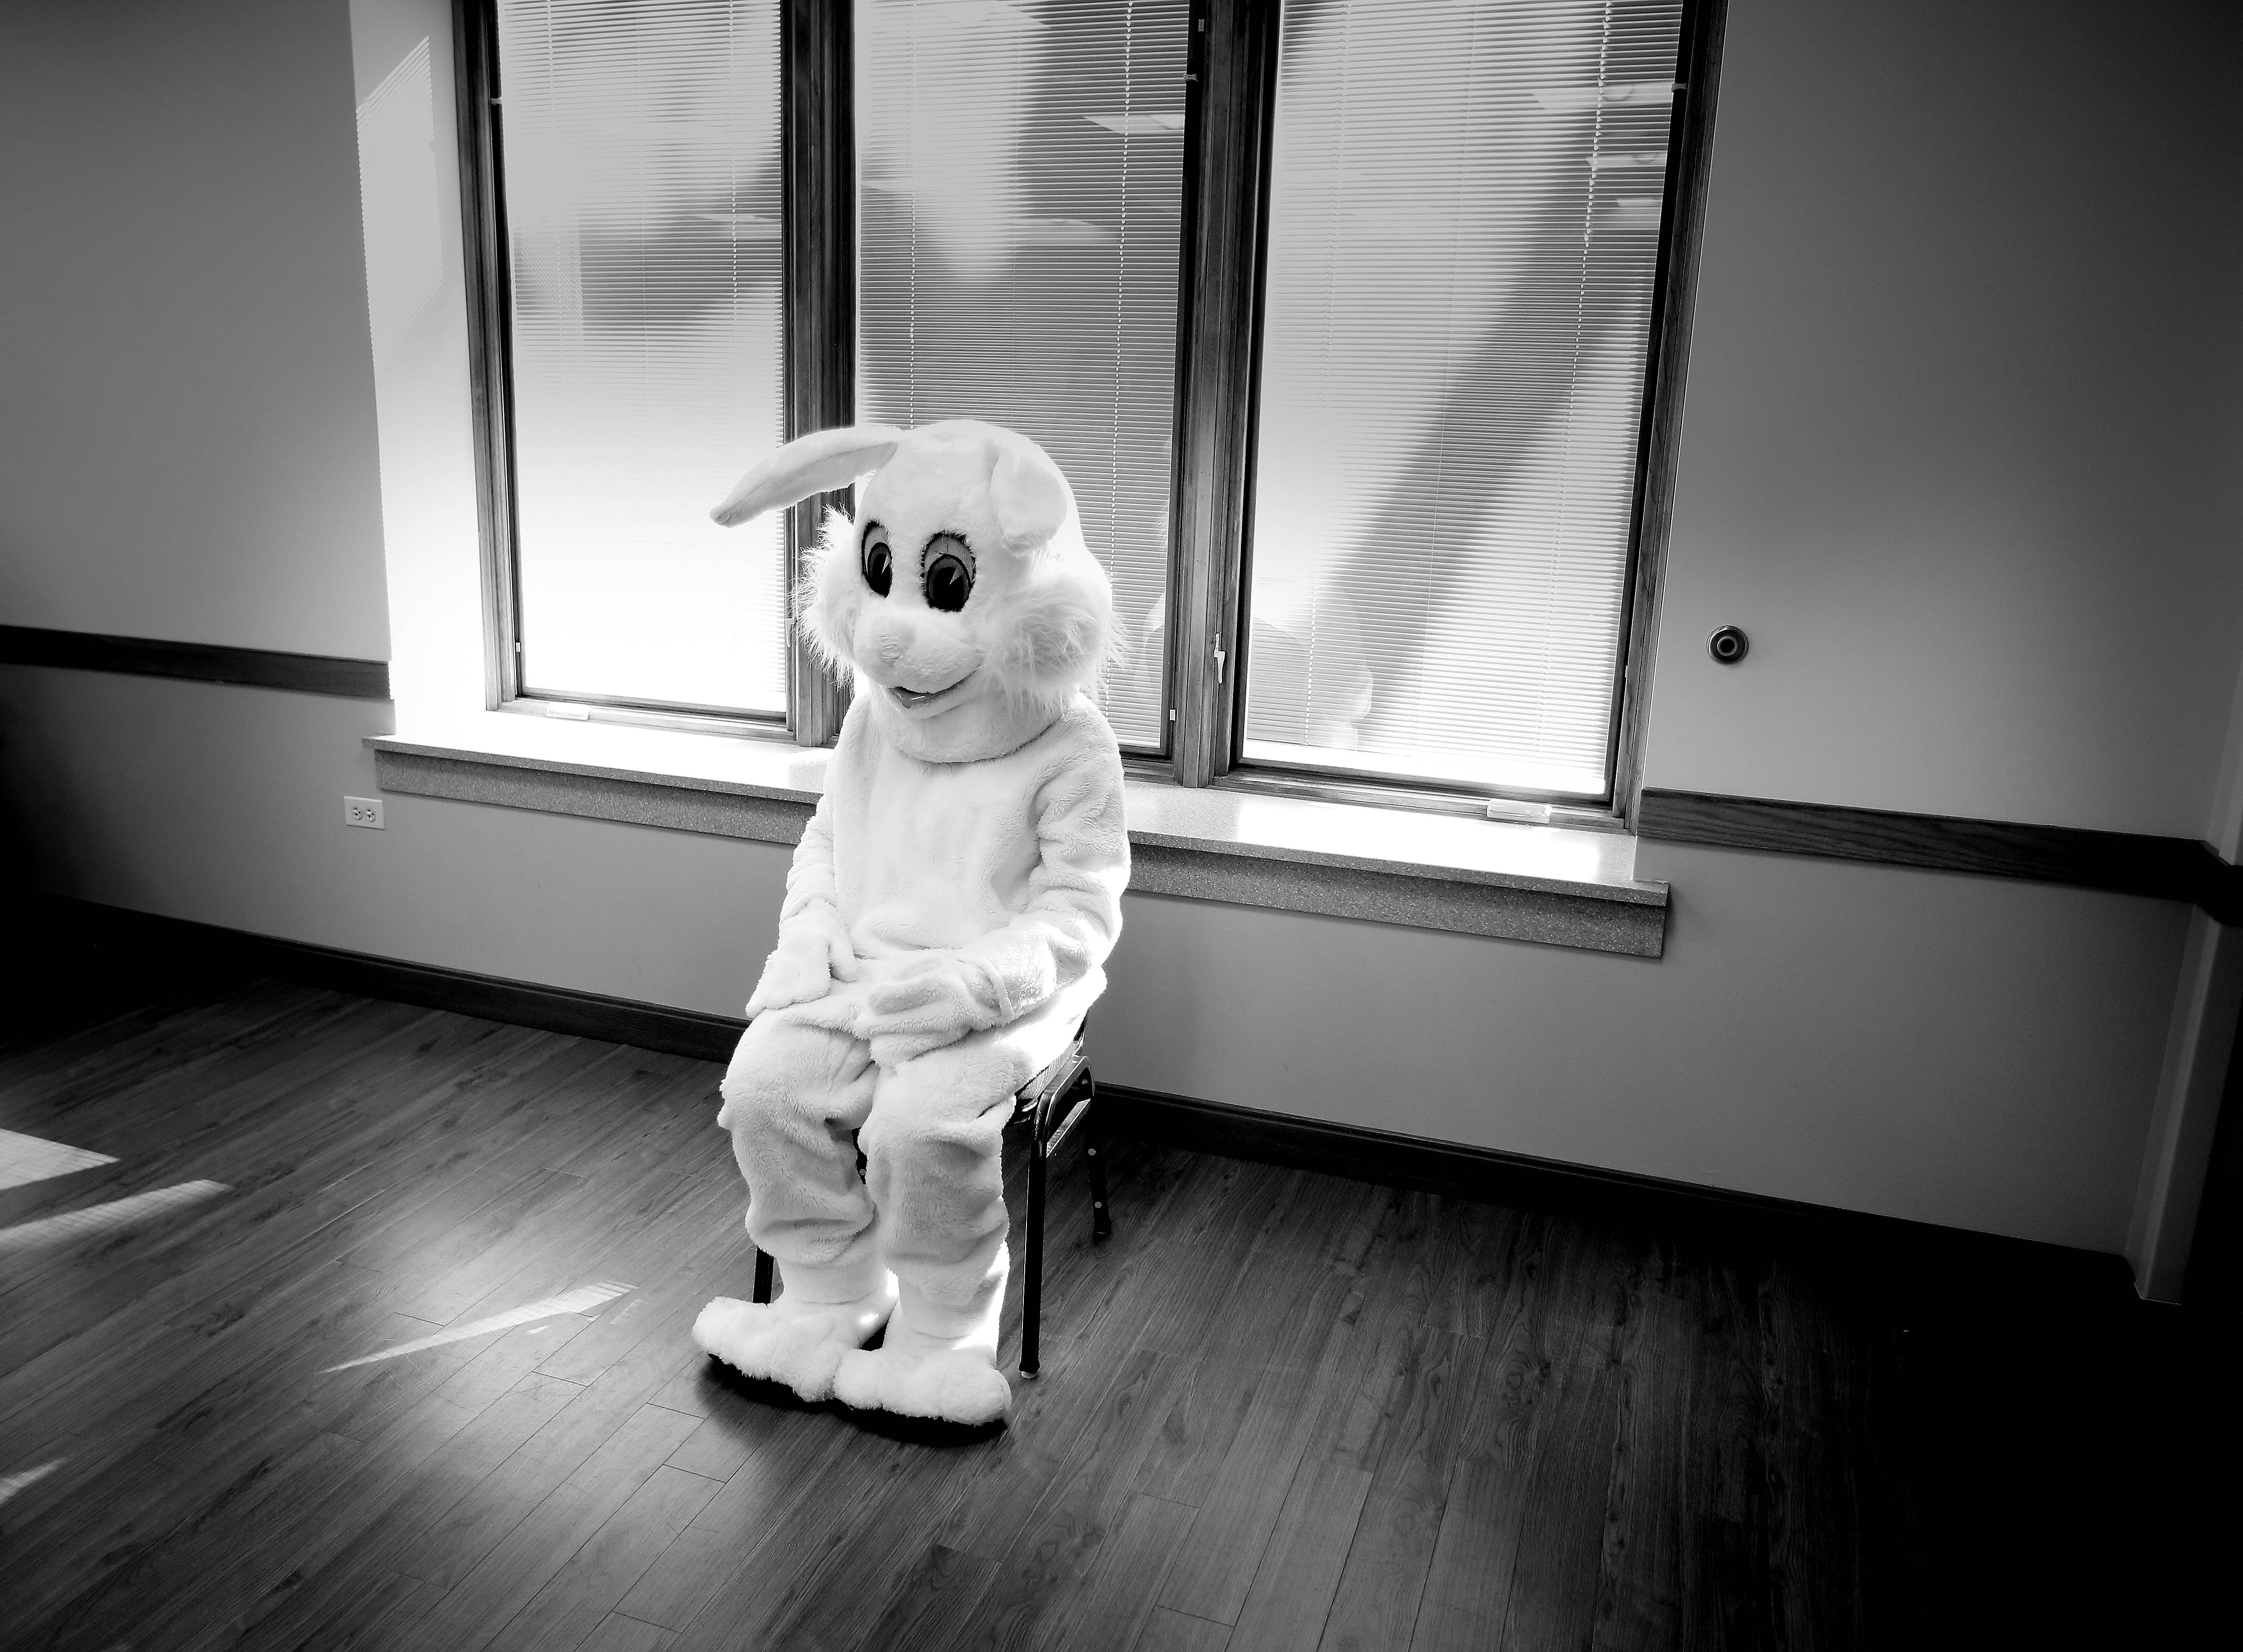 Sometimes mascot, clowns, mimes, and other costumed characters sort of make me feel uneasy. I don't know why that it is, but I almost always feel compelled to photograph them at the same time. Here is a lone bunny waiting for kids during the Cary Park District's annual Breakfast with the Bunny at the Community Center in Cary this past Easter. How do you feel about mascots and clowns? This photo was published in the Perspective column in the print edition of the Daily Herald.